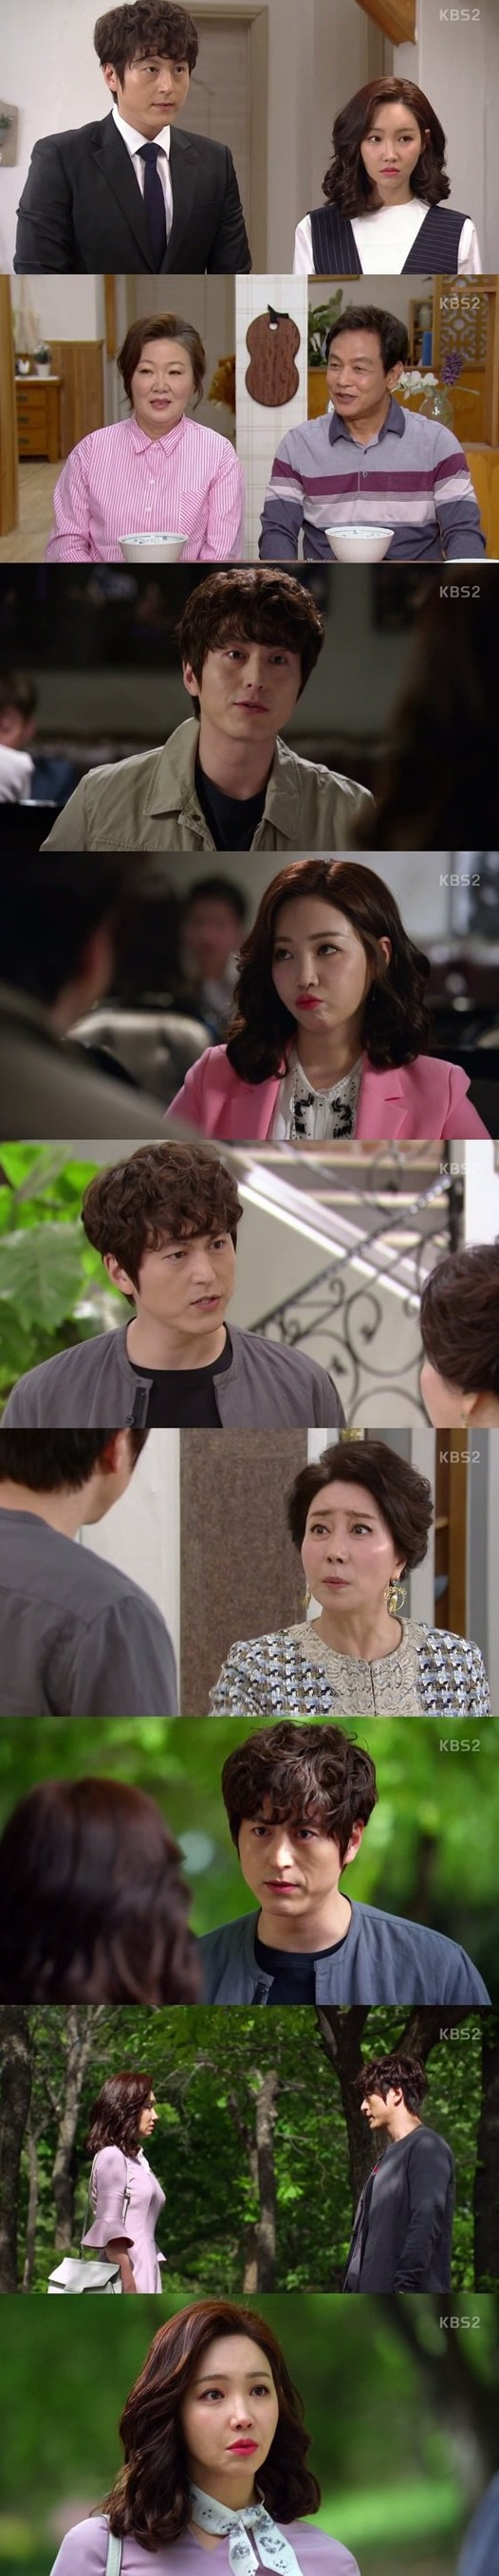 [Spoiler] Added episodes 21 and 22 captures for the Korean drama 'Father is Strange'